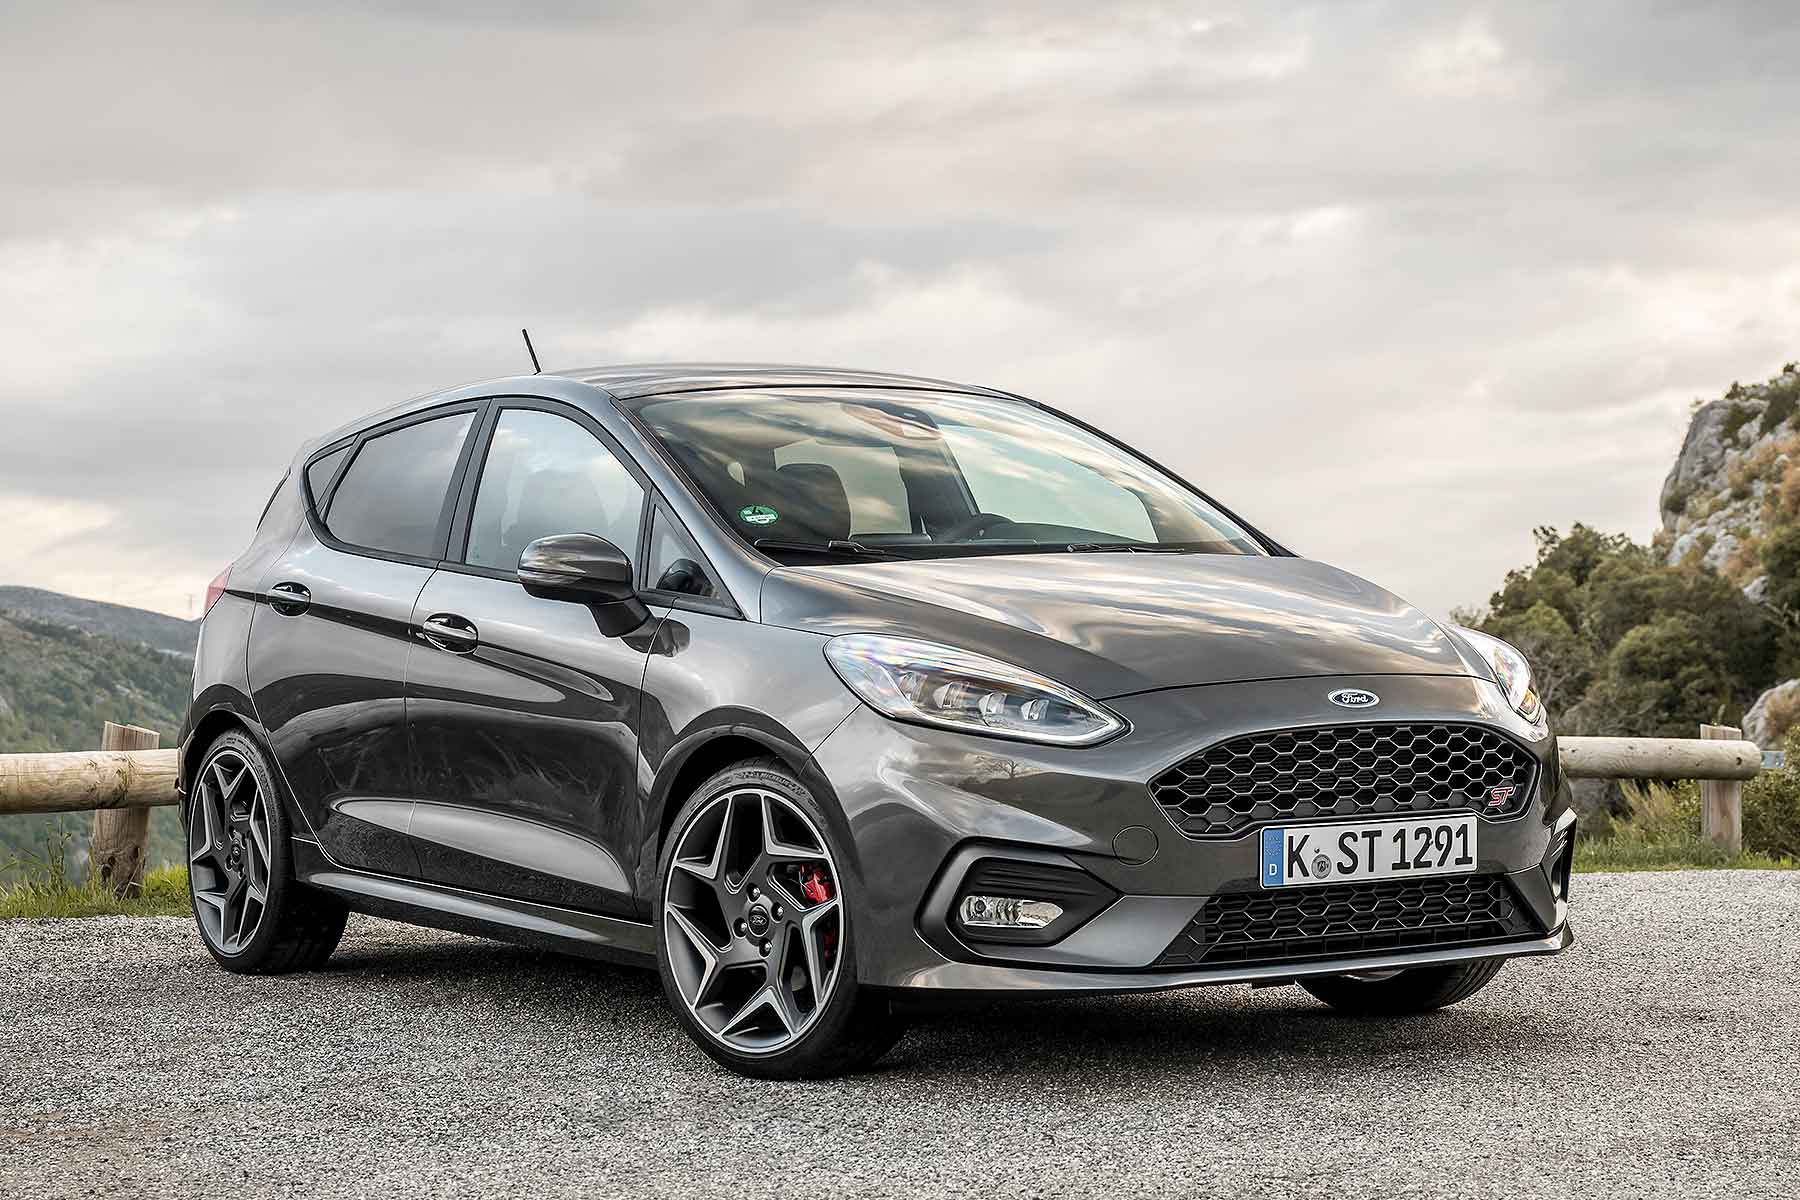 2018 ford fiesta st priced from just 18 995 motoring. Black Bedroom Furniture Sets. Home Design Ideas